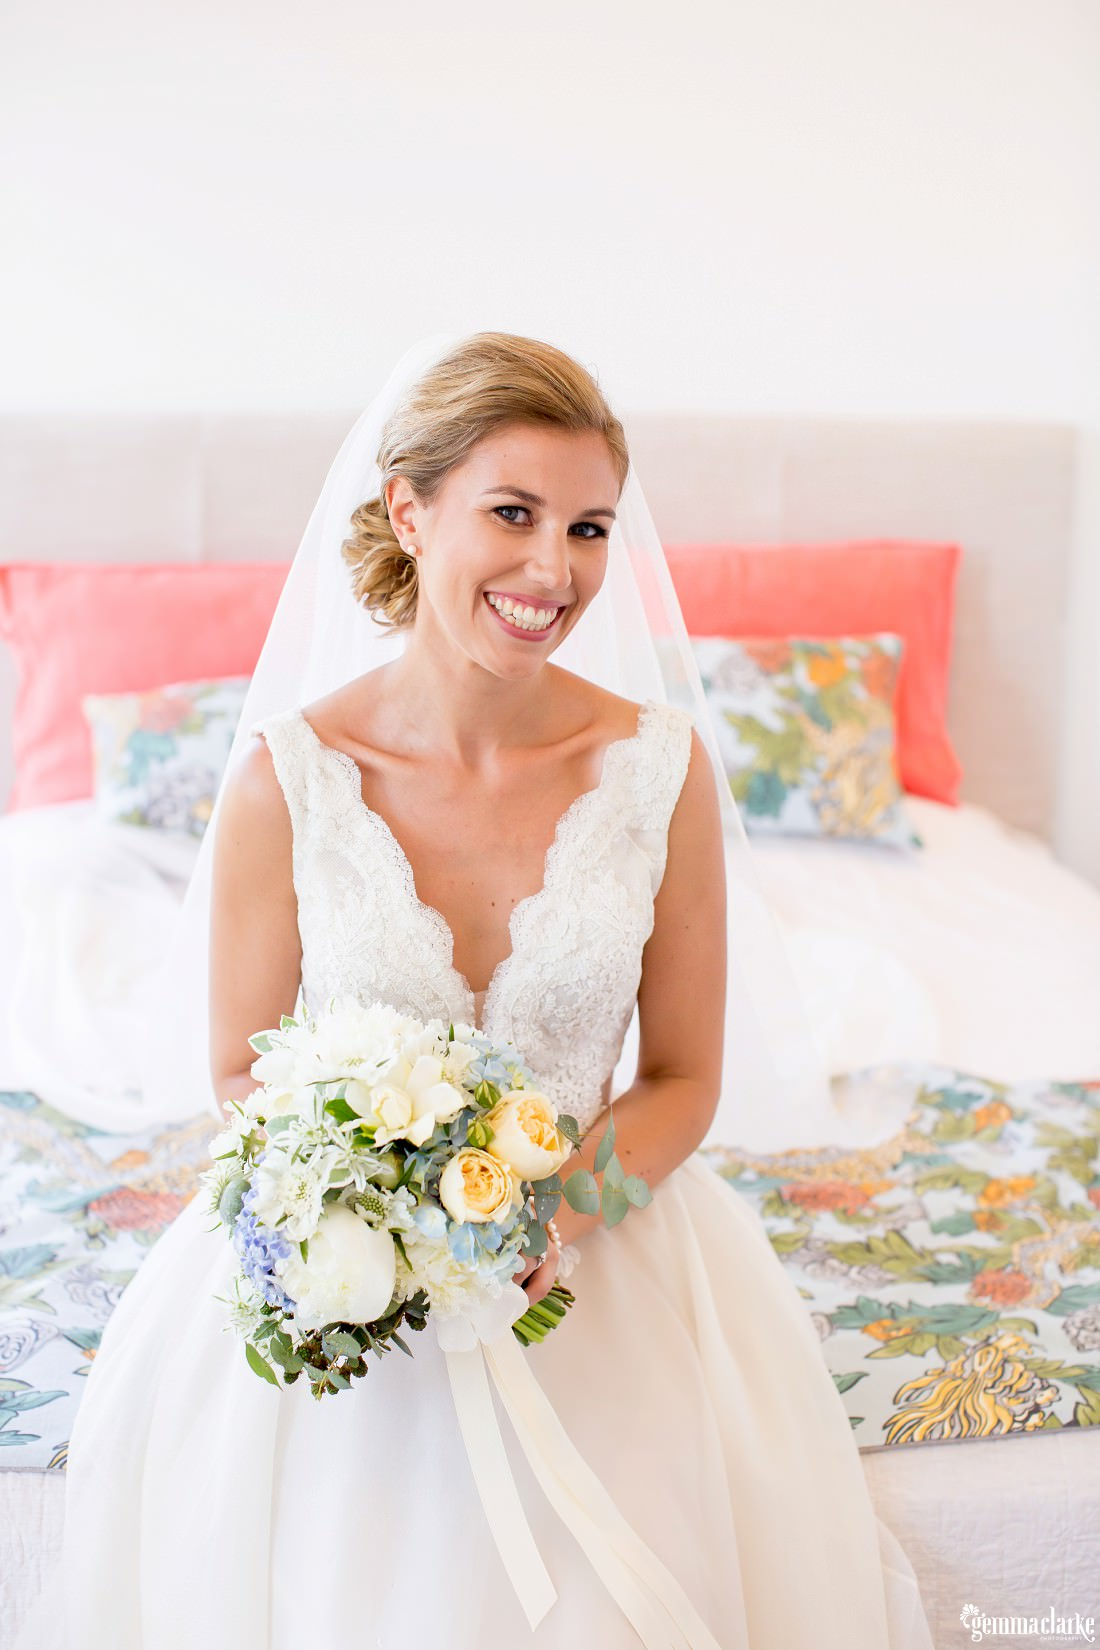 A smiling bride sitting on a bed